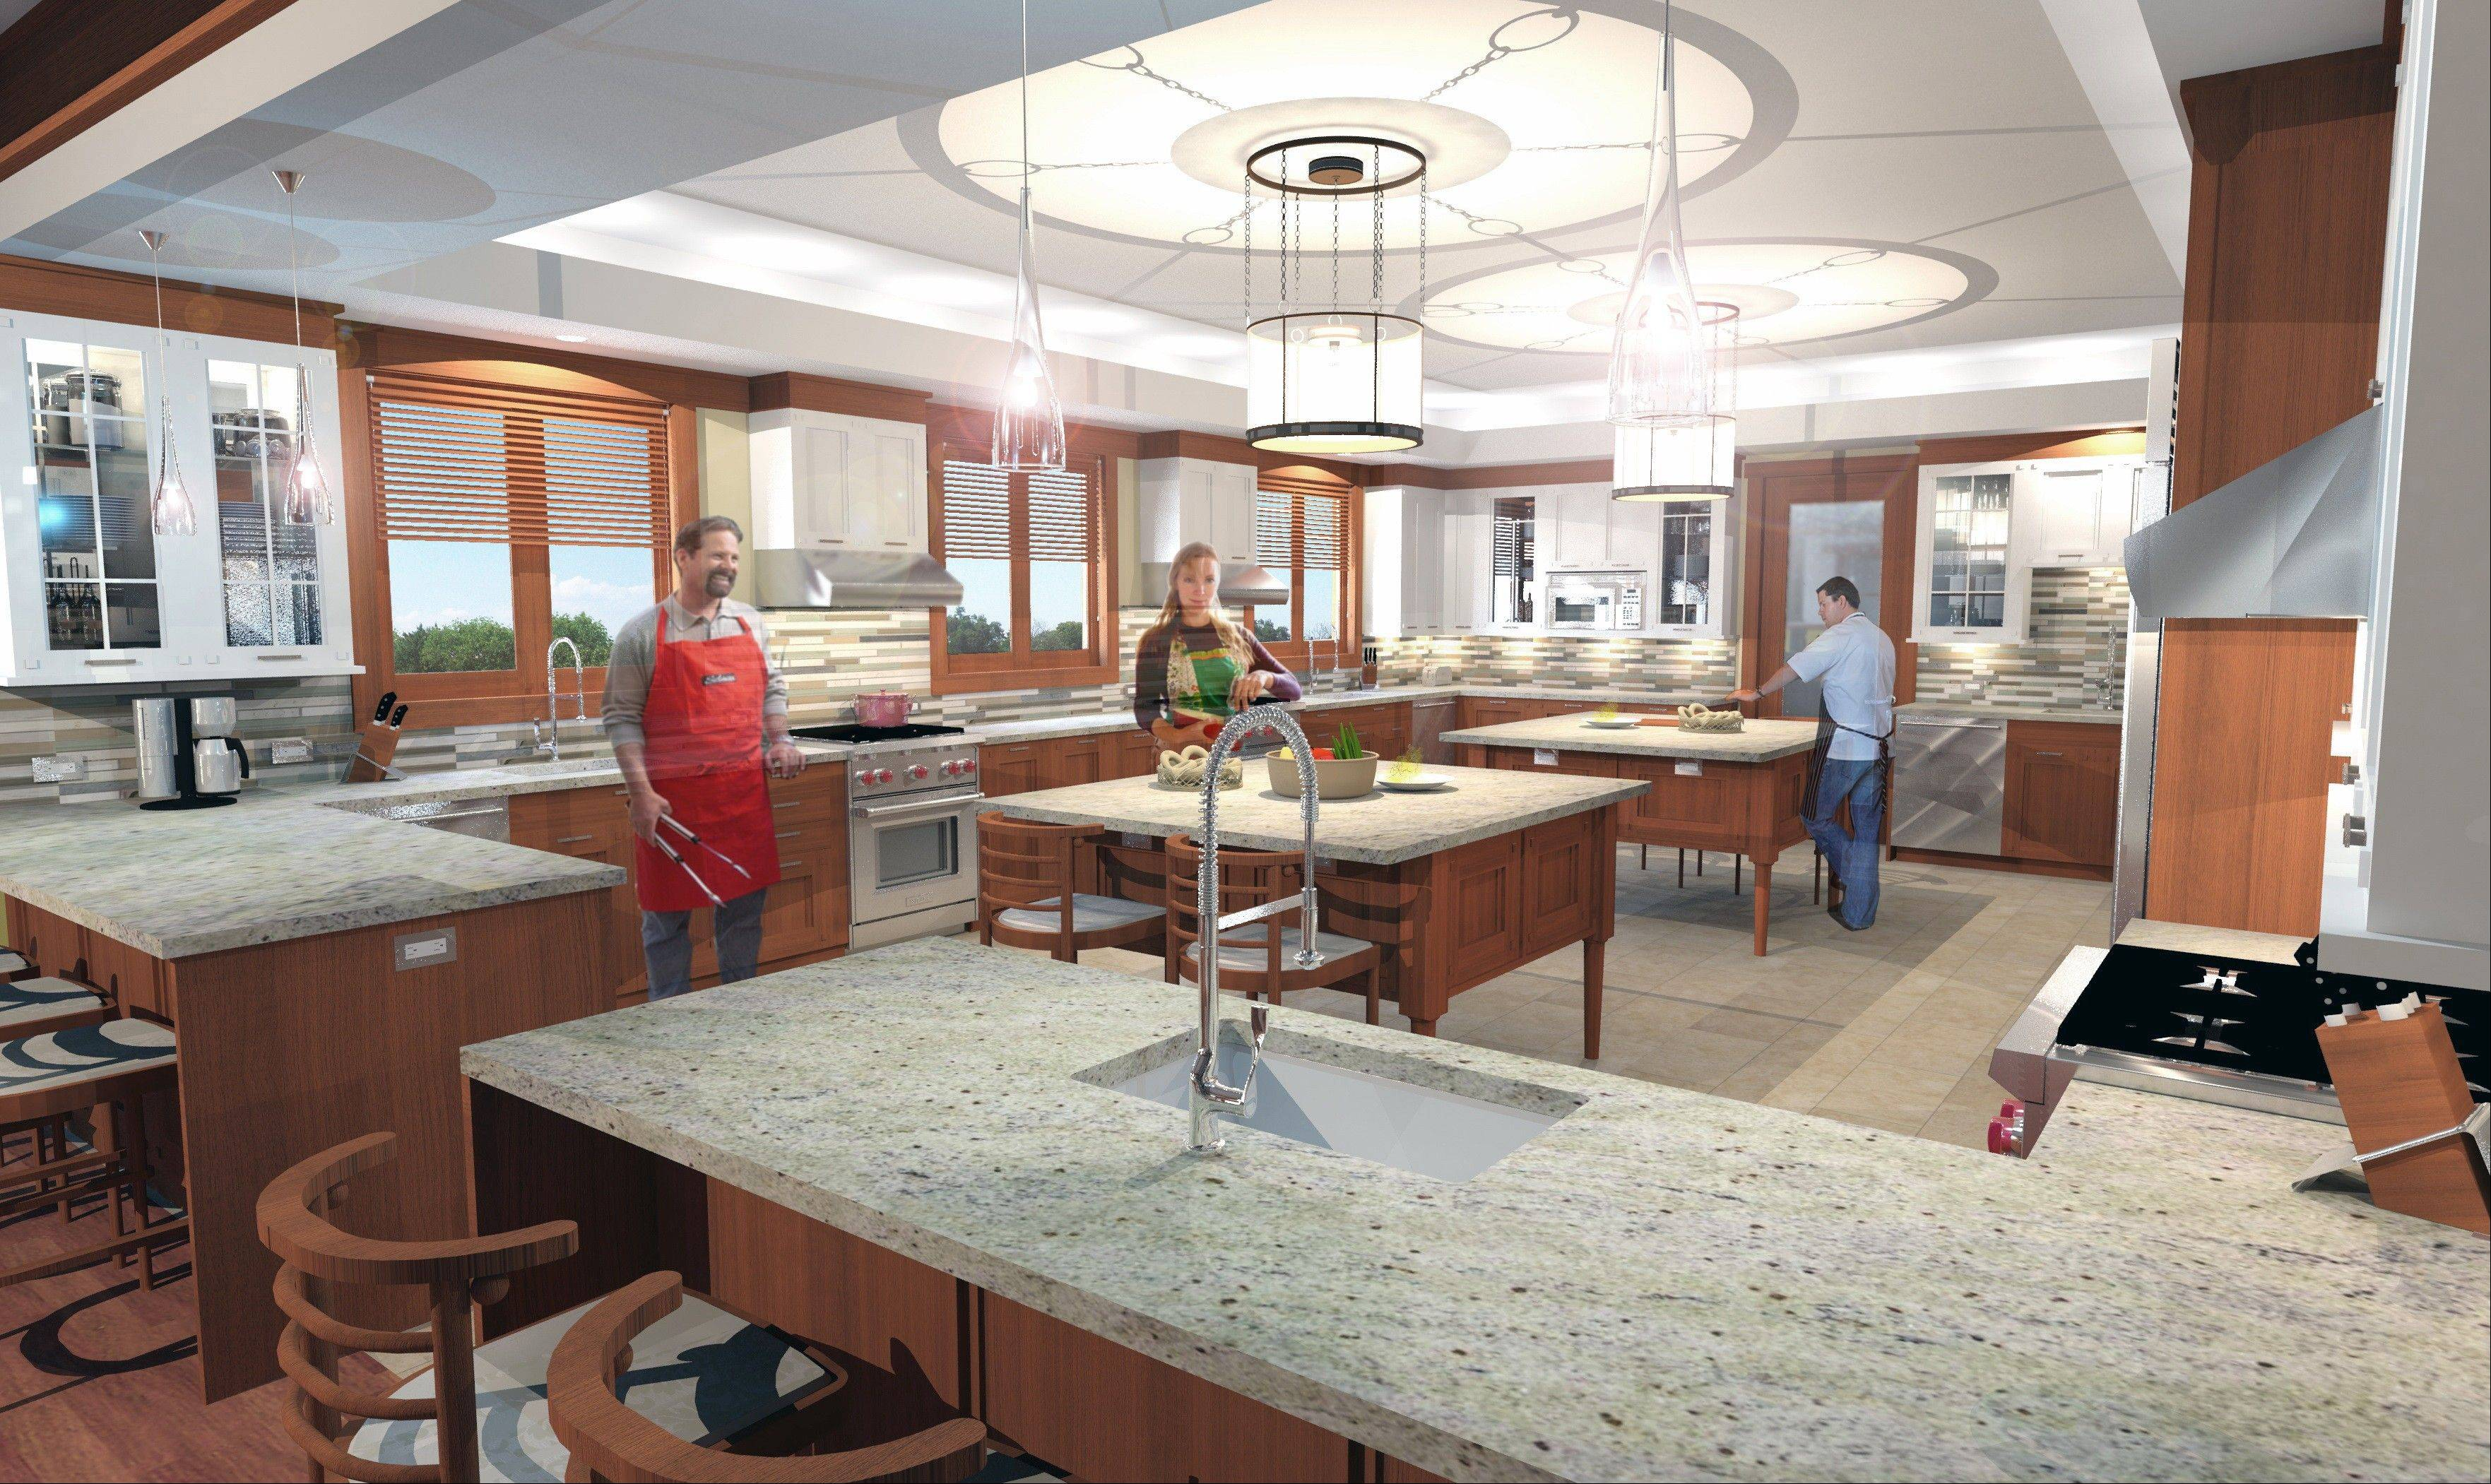 Plans call for the Ronald McDonald House near Cadence Health -- CDH Campus to have a large kitchen that volunteers and families can use to prepare meals.